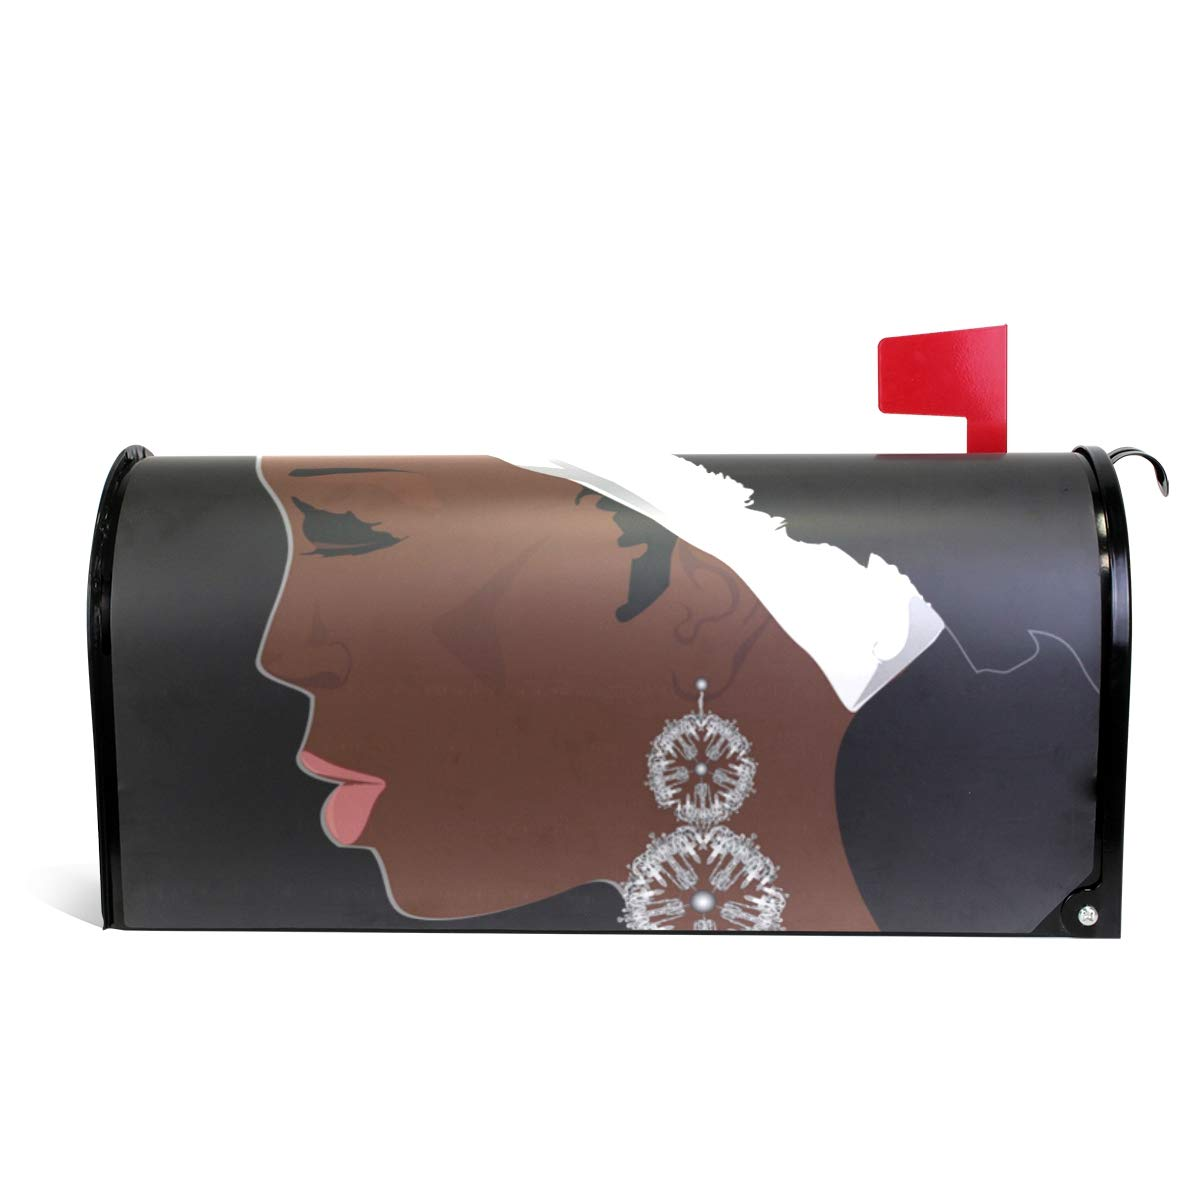 ALAZA Glamour African Woman Magnetic Mailbox Cover Standard Size-18''x 20.8''